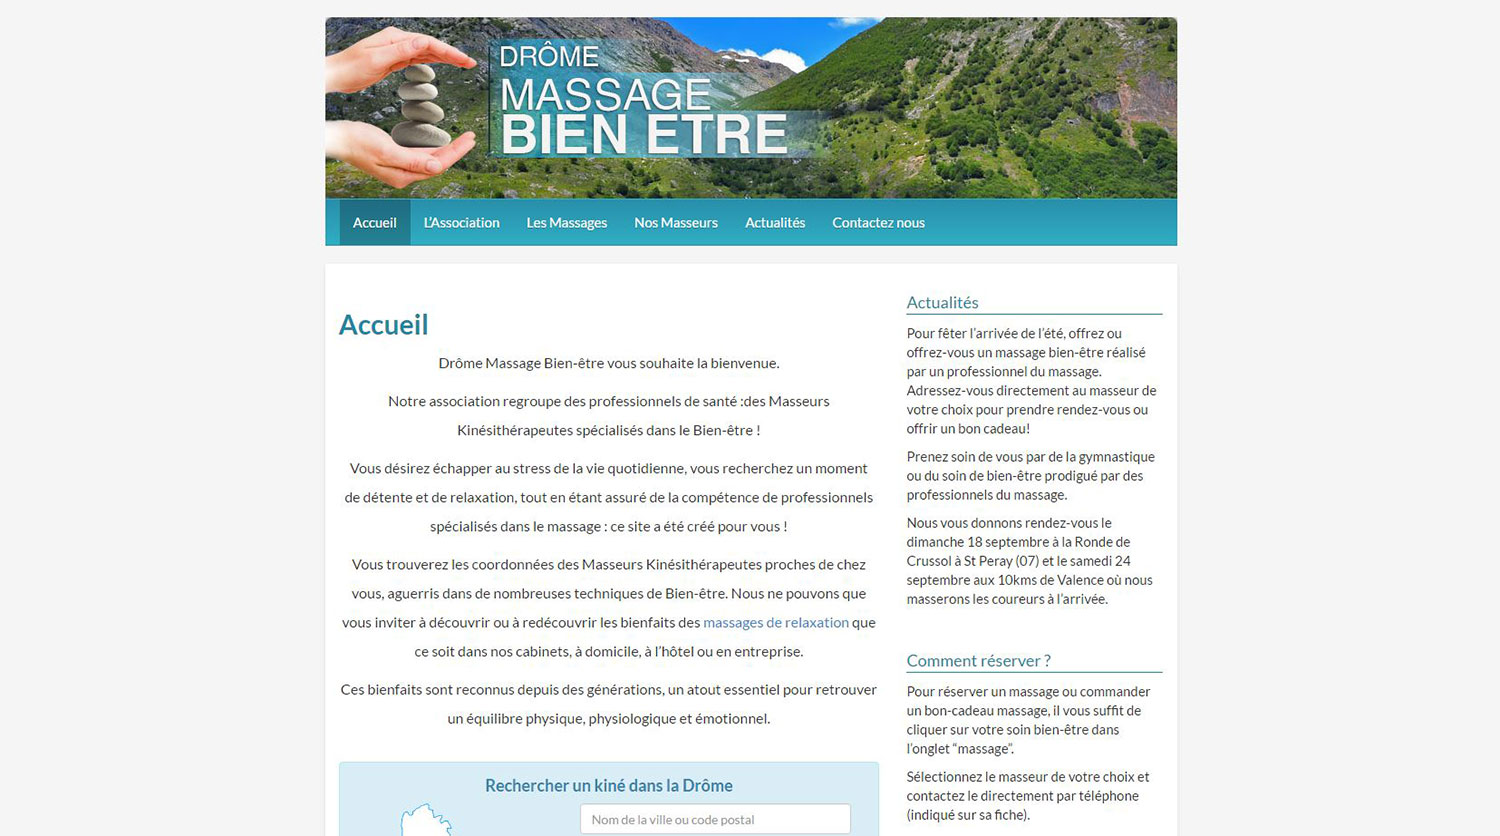 Website maintenance - Drôme Massage